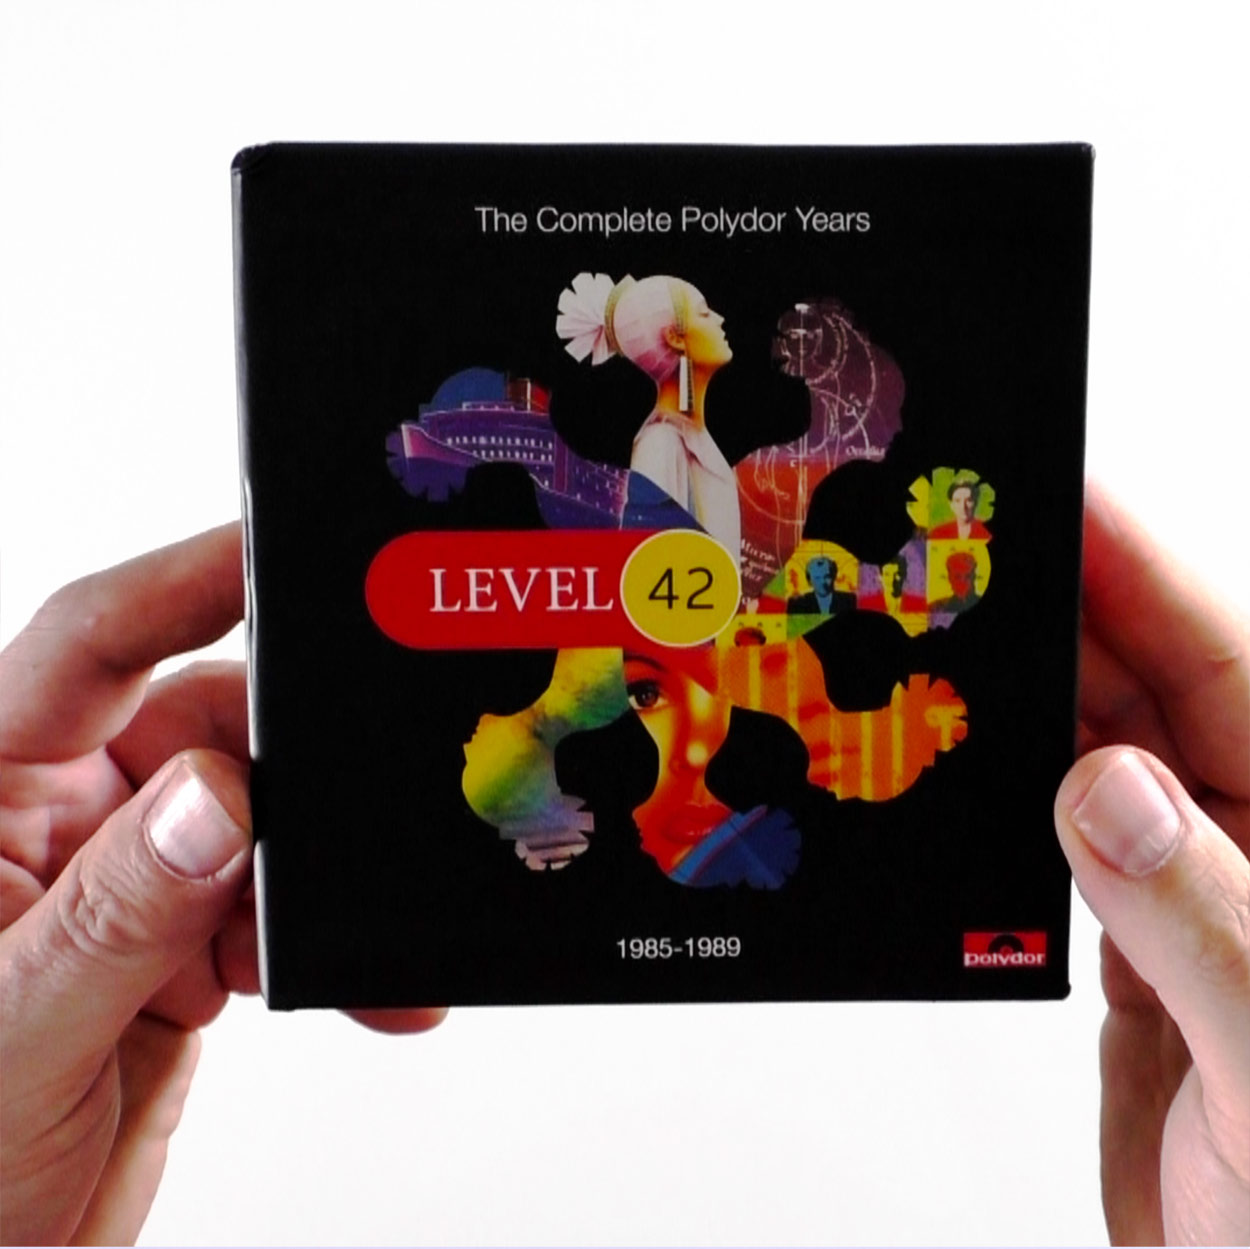 Level 42 / The Complete Polydor Years 1985-1989 unboxing video